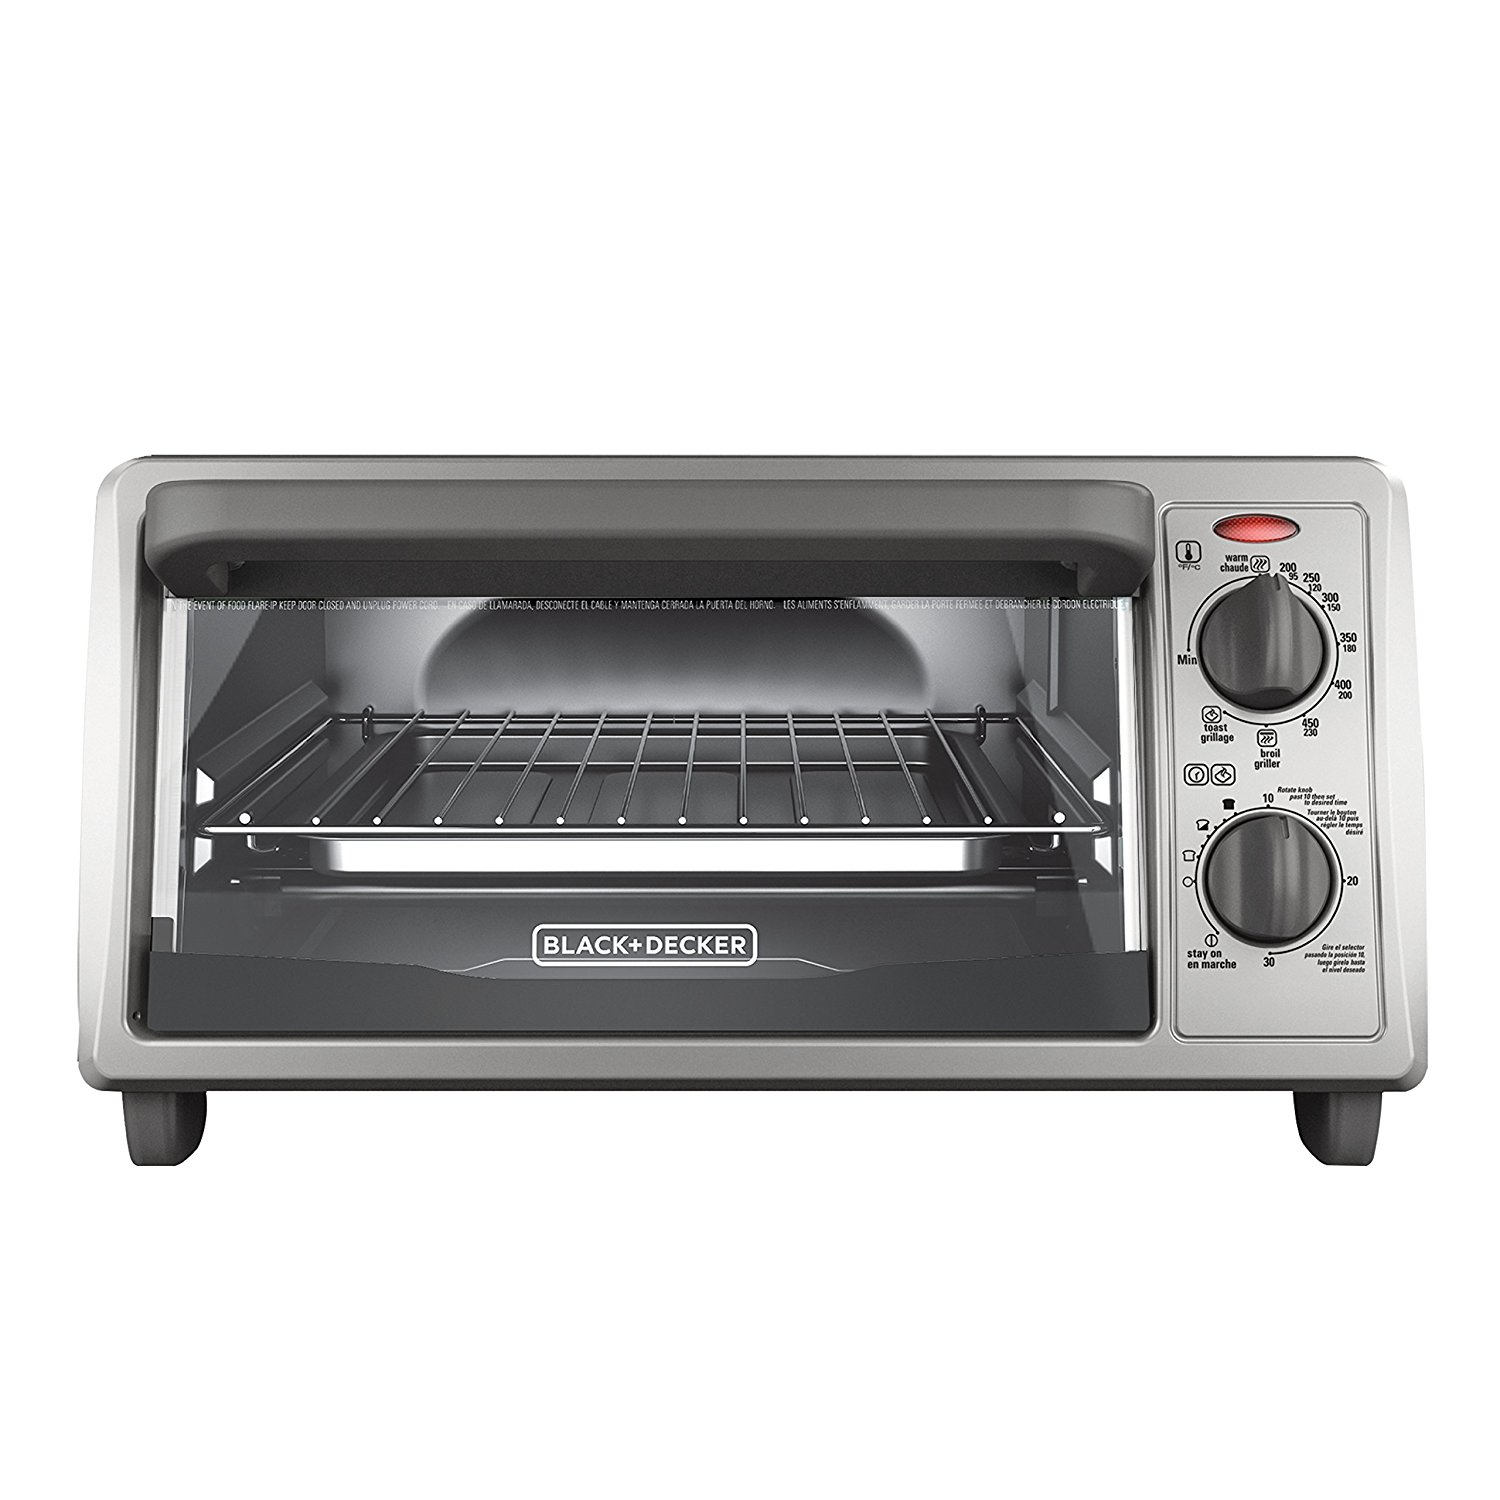 buy small best oven the taster in to convection toaster june countertop delonghi rotisserie